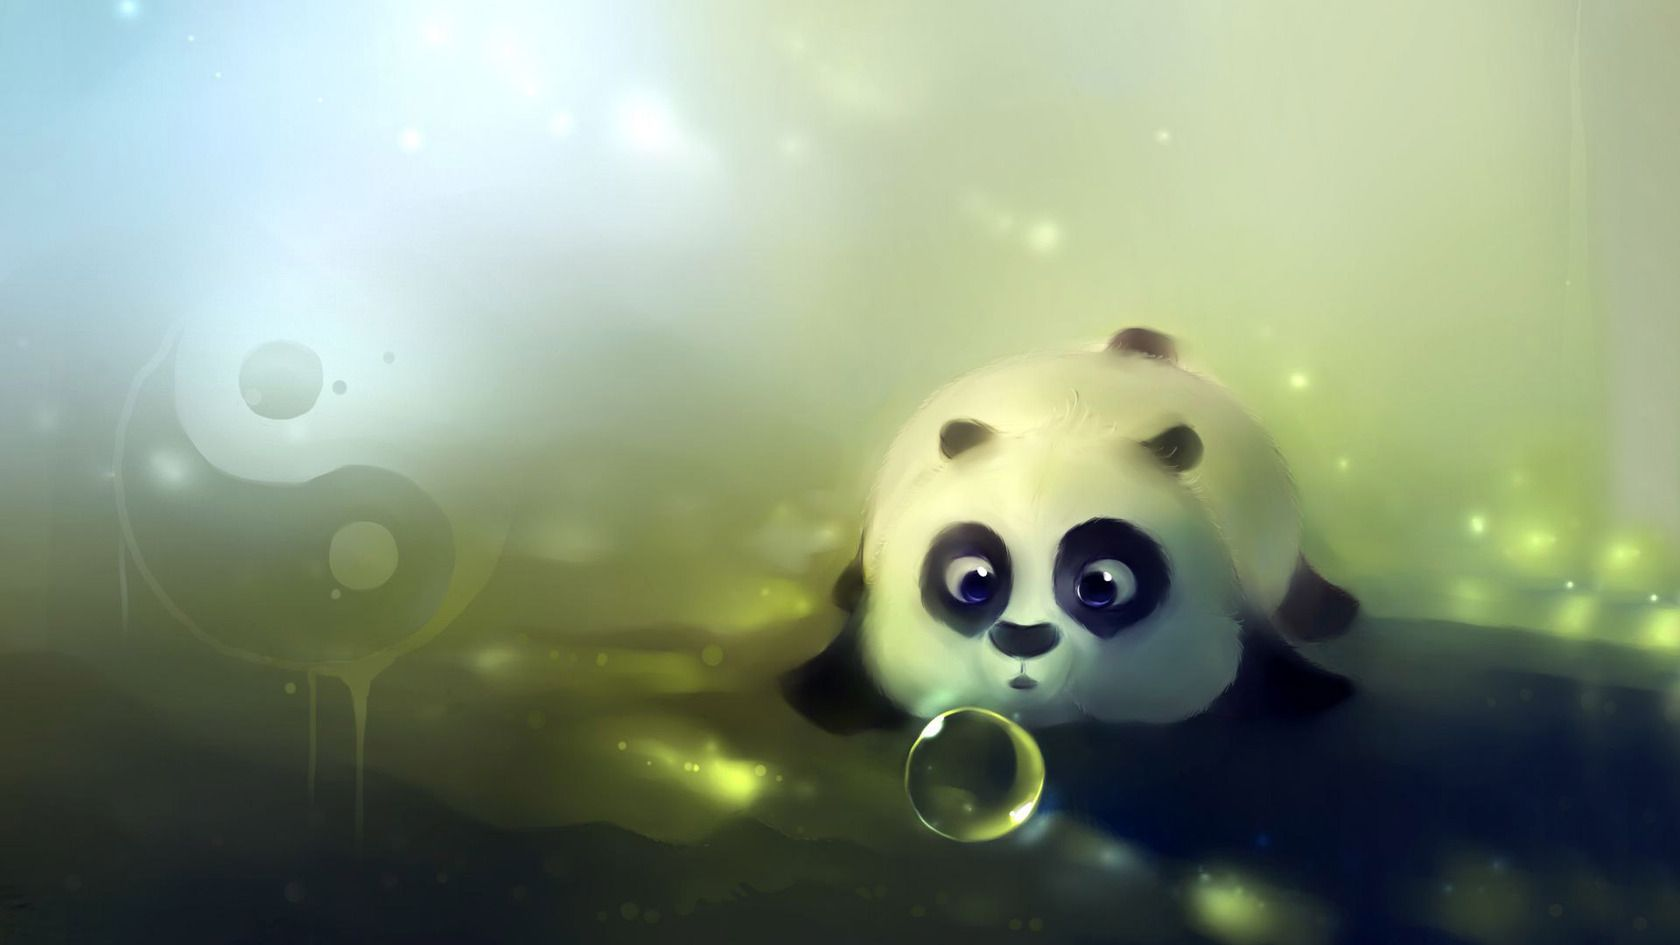 Artistic Cute Panda Playing With Bubbles Wallpaper Hd Jpg 1680 945 Panda Wallpapers Cute Laptop Wallpaper Hd Cute Wallpapers